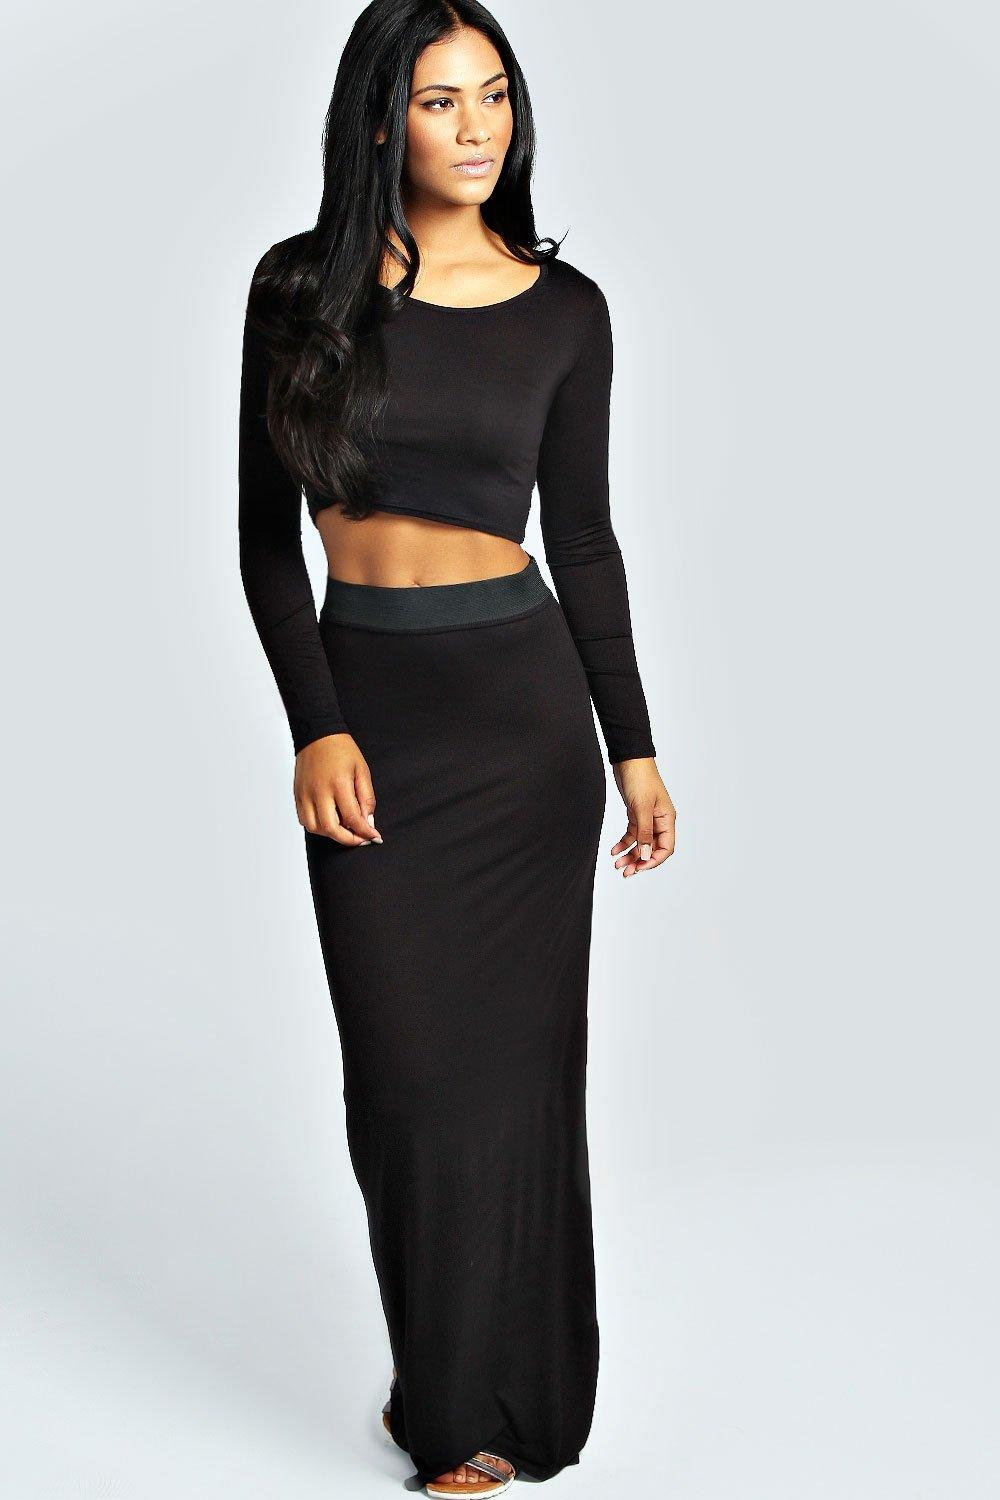 tilly sleeve crop top maxi skirt co ord set